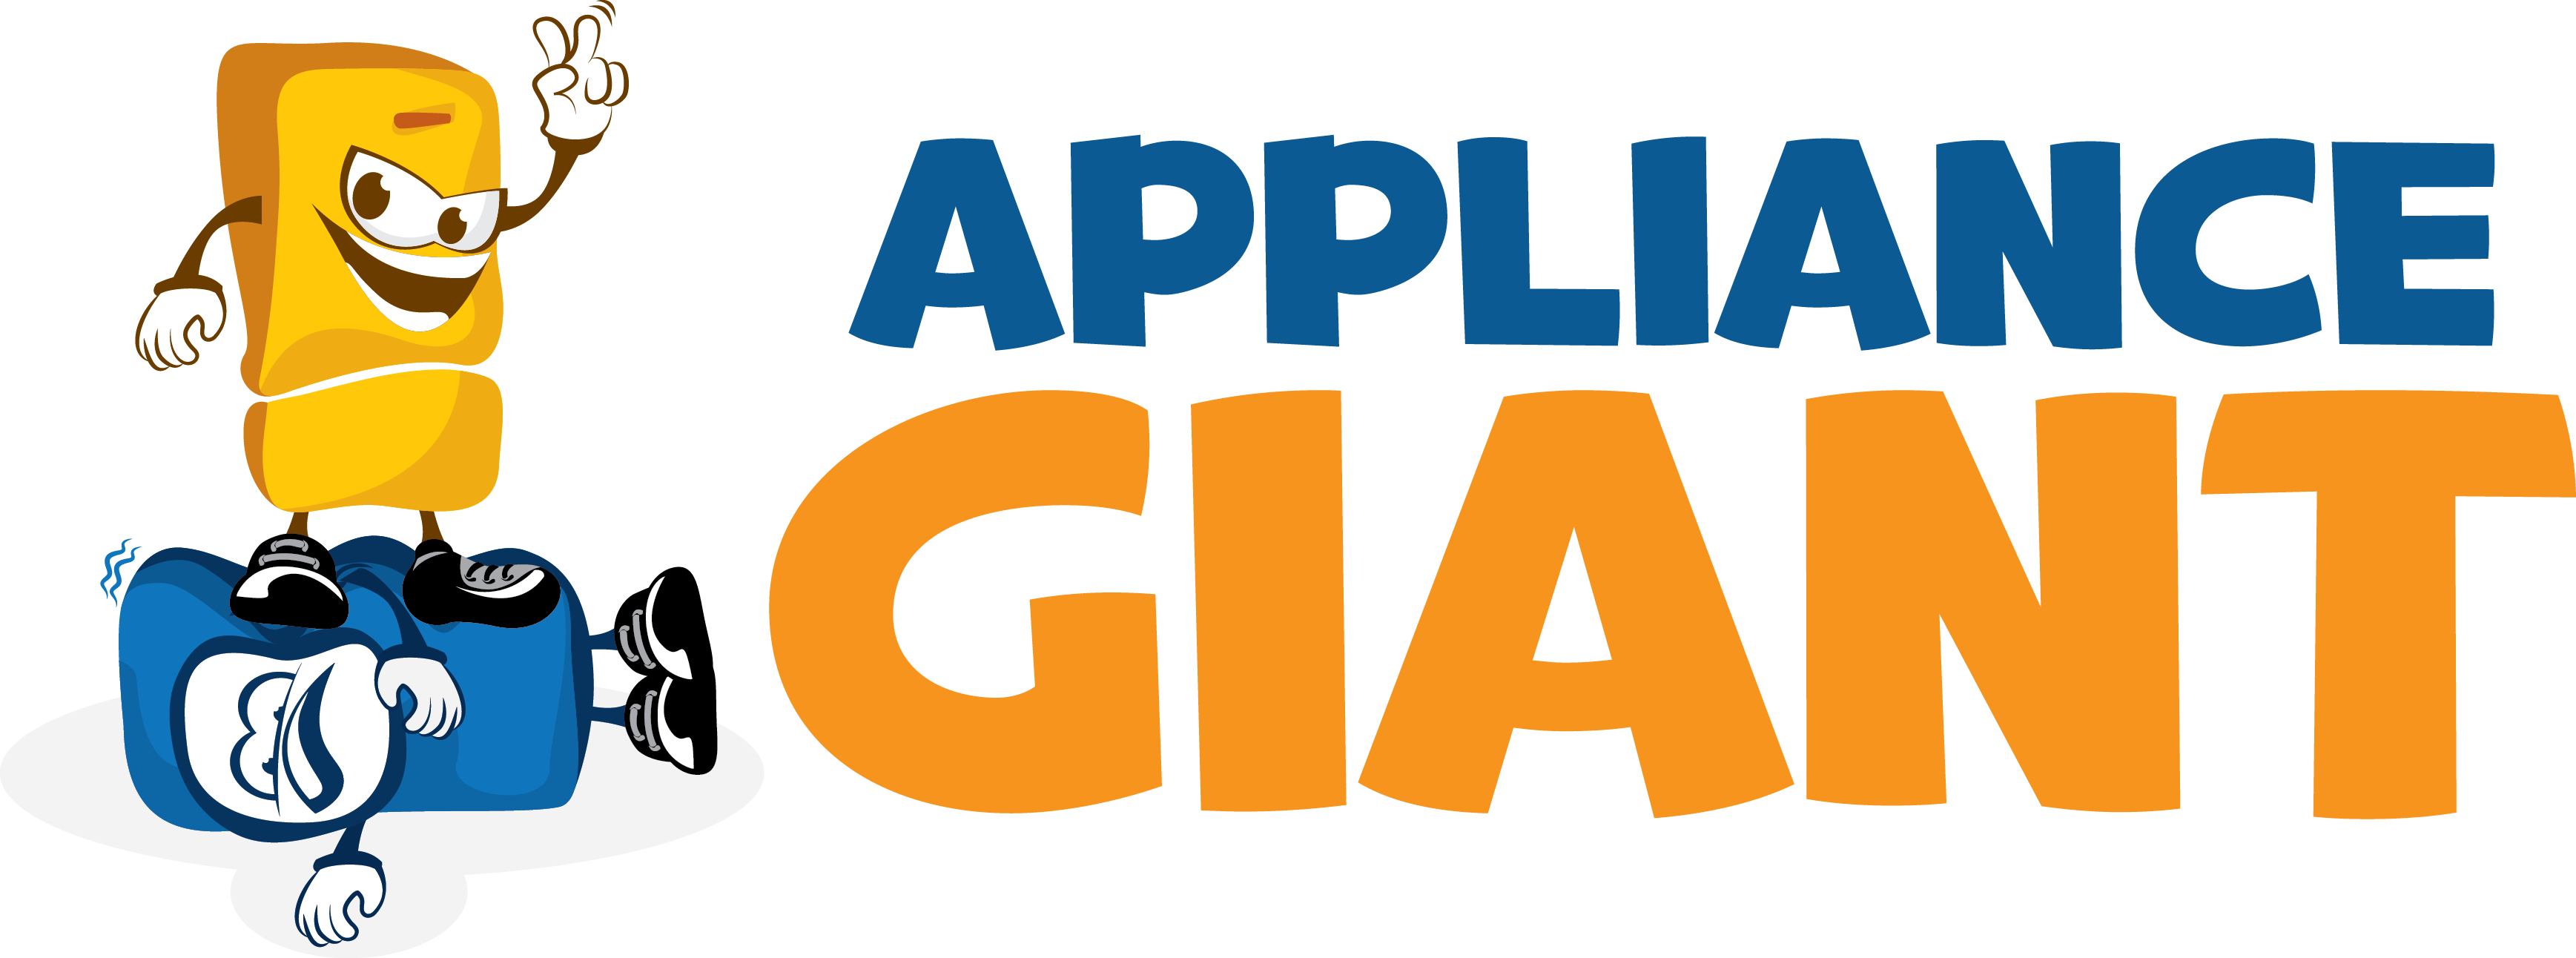 Appliance Giant logo